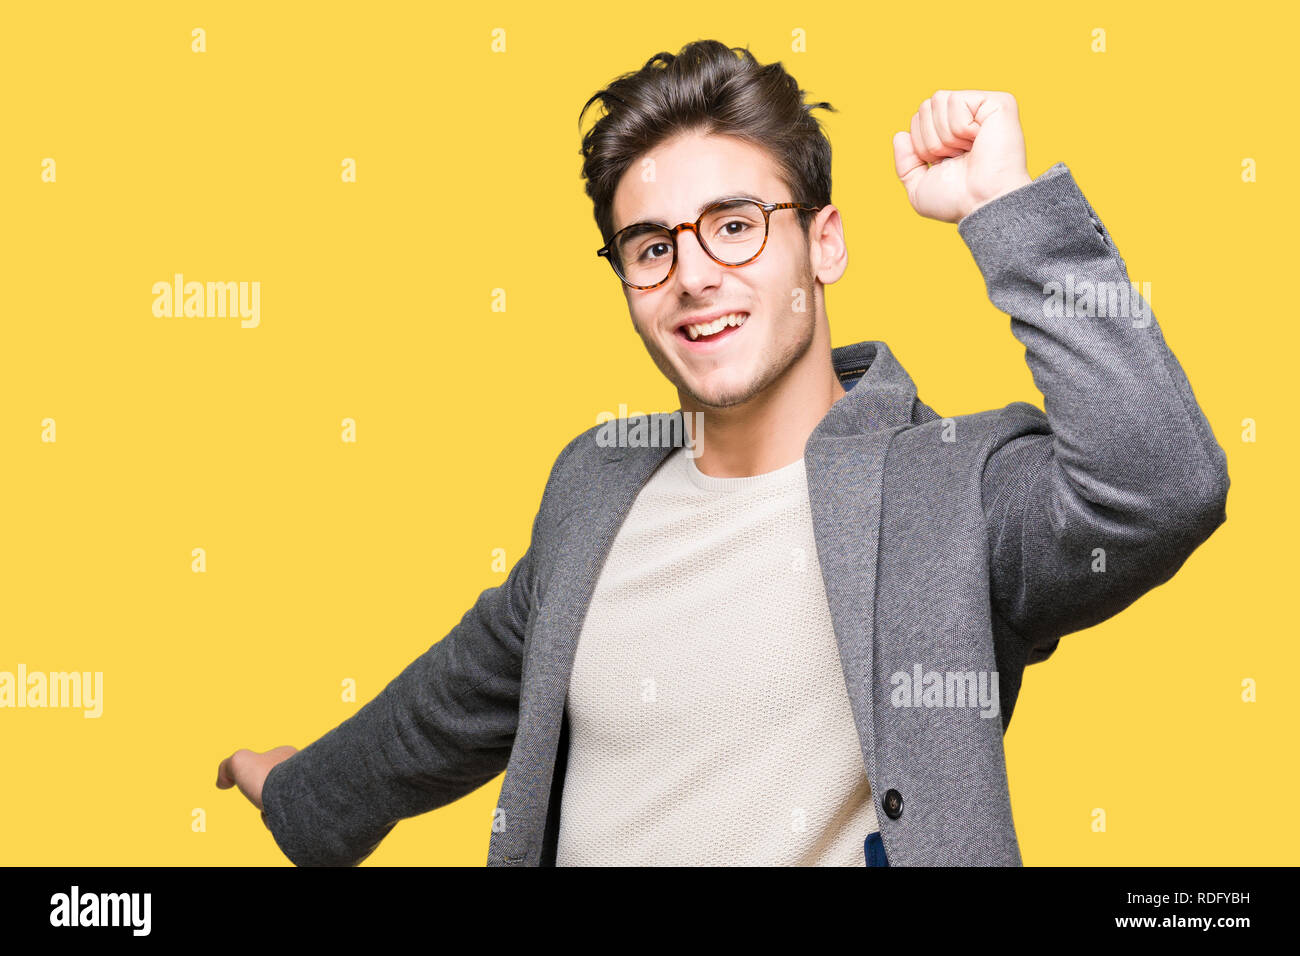 4187601abf Young business man wearing glasses over isolated background Dancing happy  and cheerful